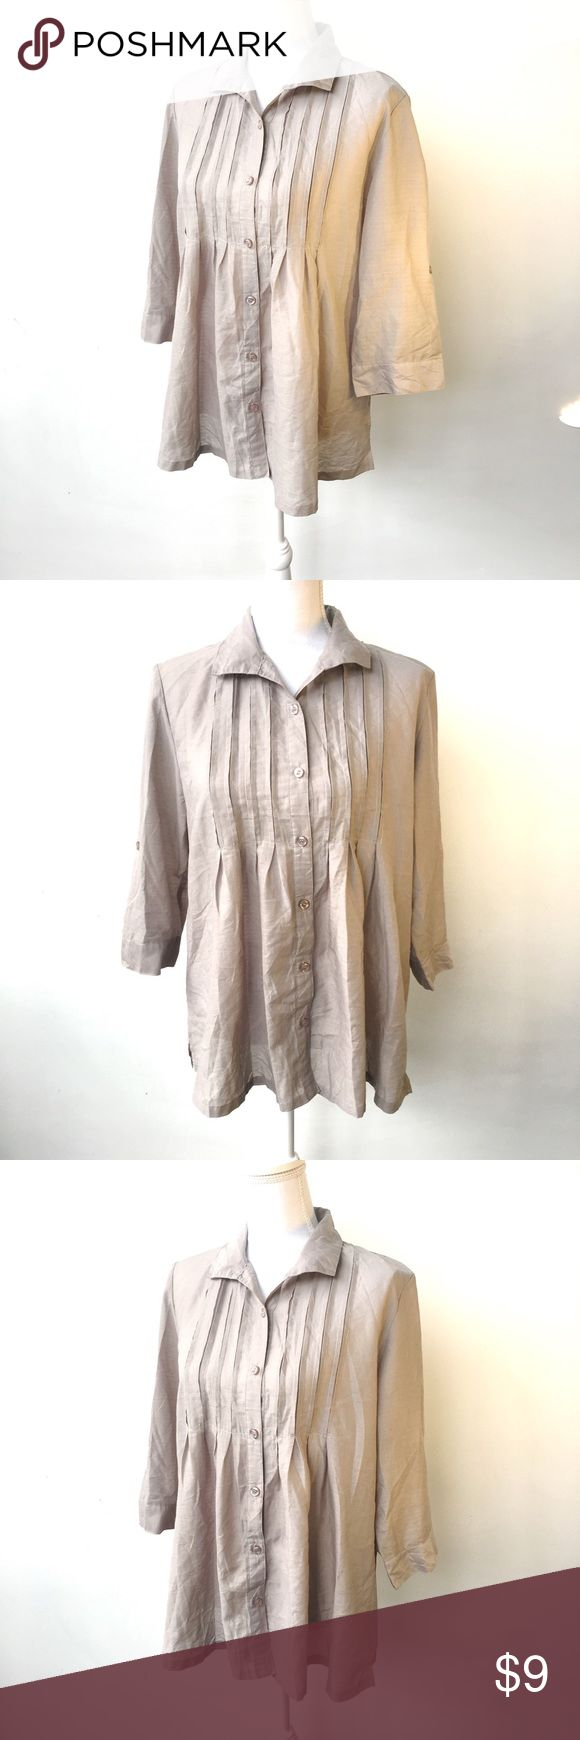 Grey pleated babydoll blouse, XL Loose, flowy fit. Sleeves can be tacked up. Pleats across chest. Very lightweight material. Tag is in Chinese so I can't tell you size or material, but it feels like an XL and a poly blend. The fabric has a subtle texturizing / teeny raised polka dotted weave. Empire waist / babydoll flare fit. Flattering! graceful days Tops Button Down Shirts